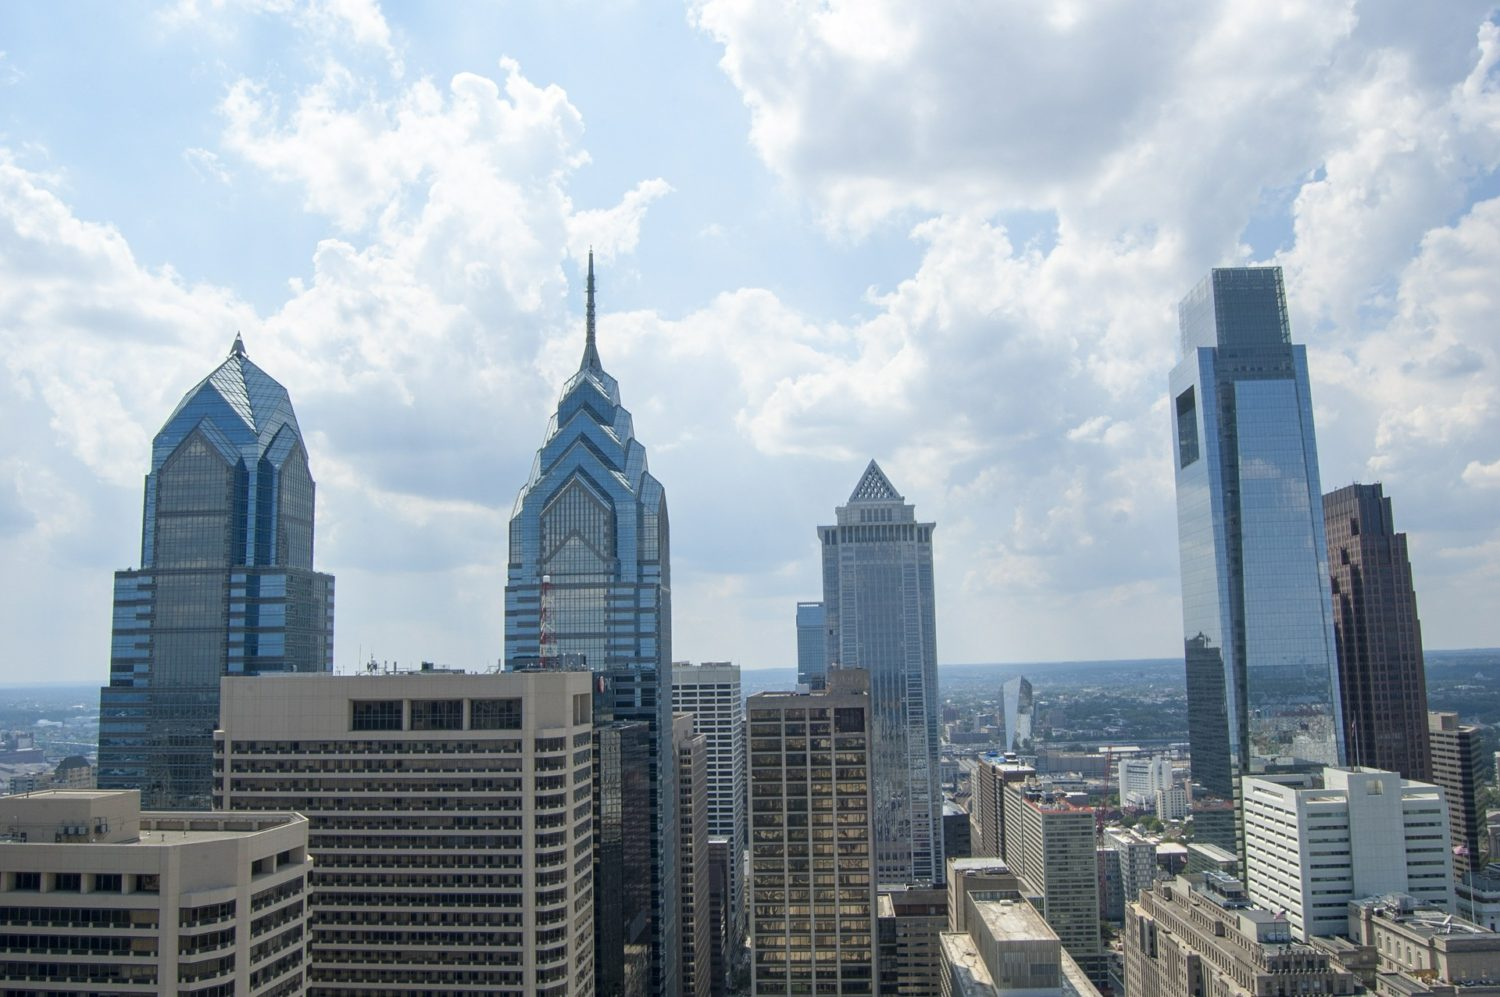 Skyscrapers in Philadelphia, Pennsylvania